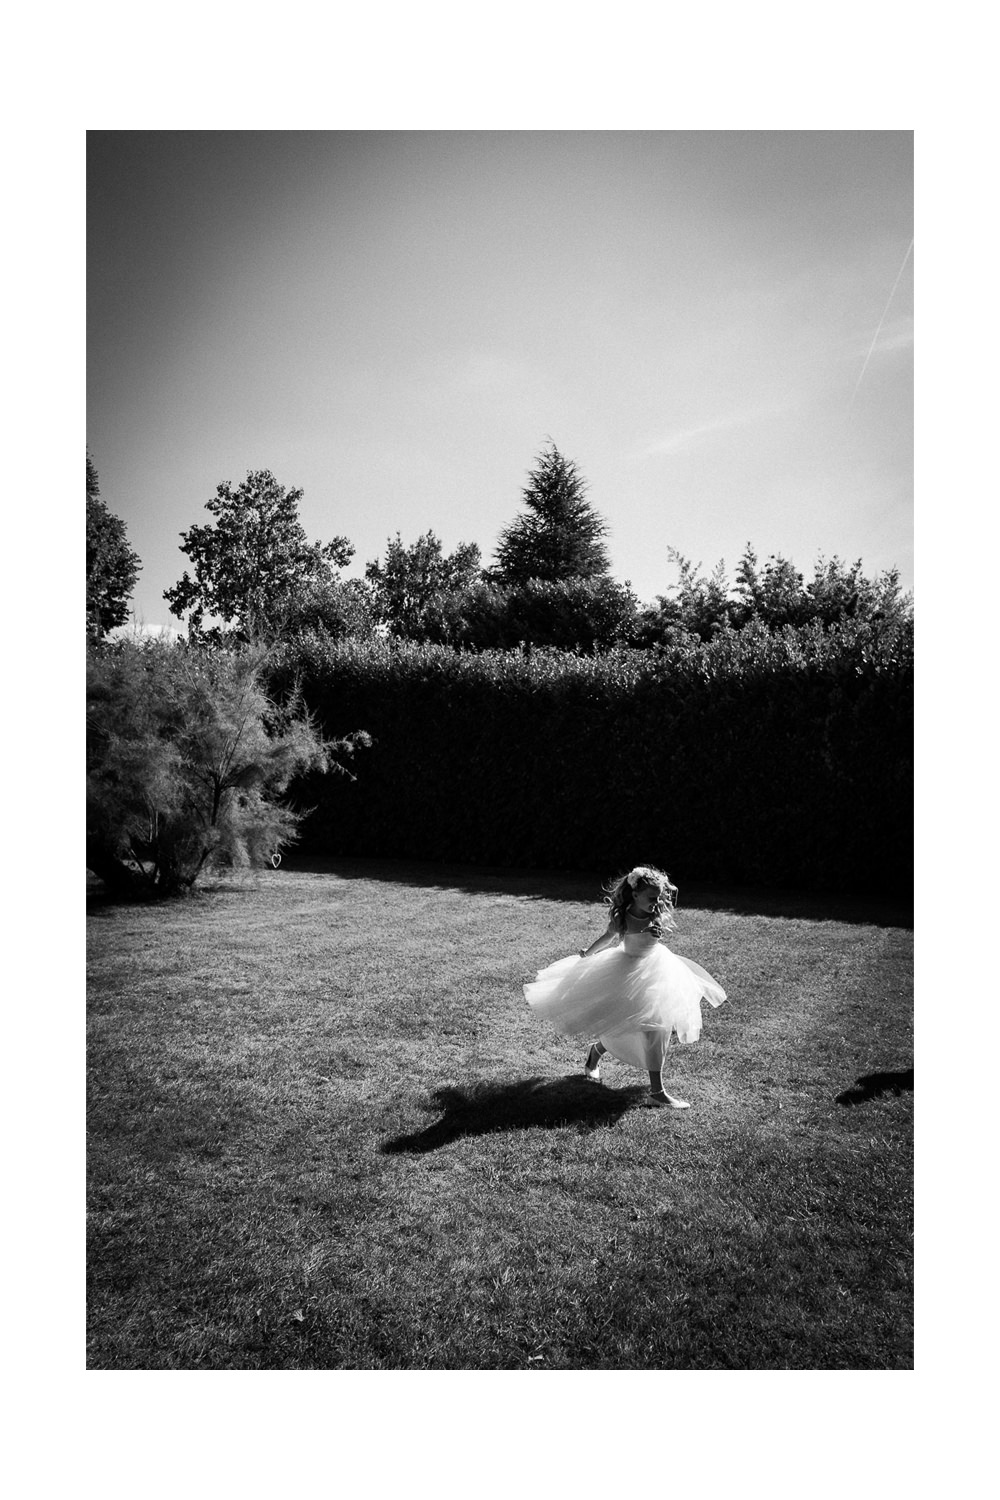 a young bridesmaid dances in a garden. A frame from my recent uk wedding videography work.